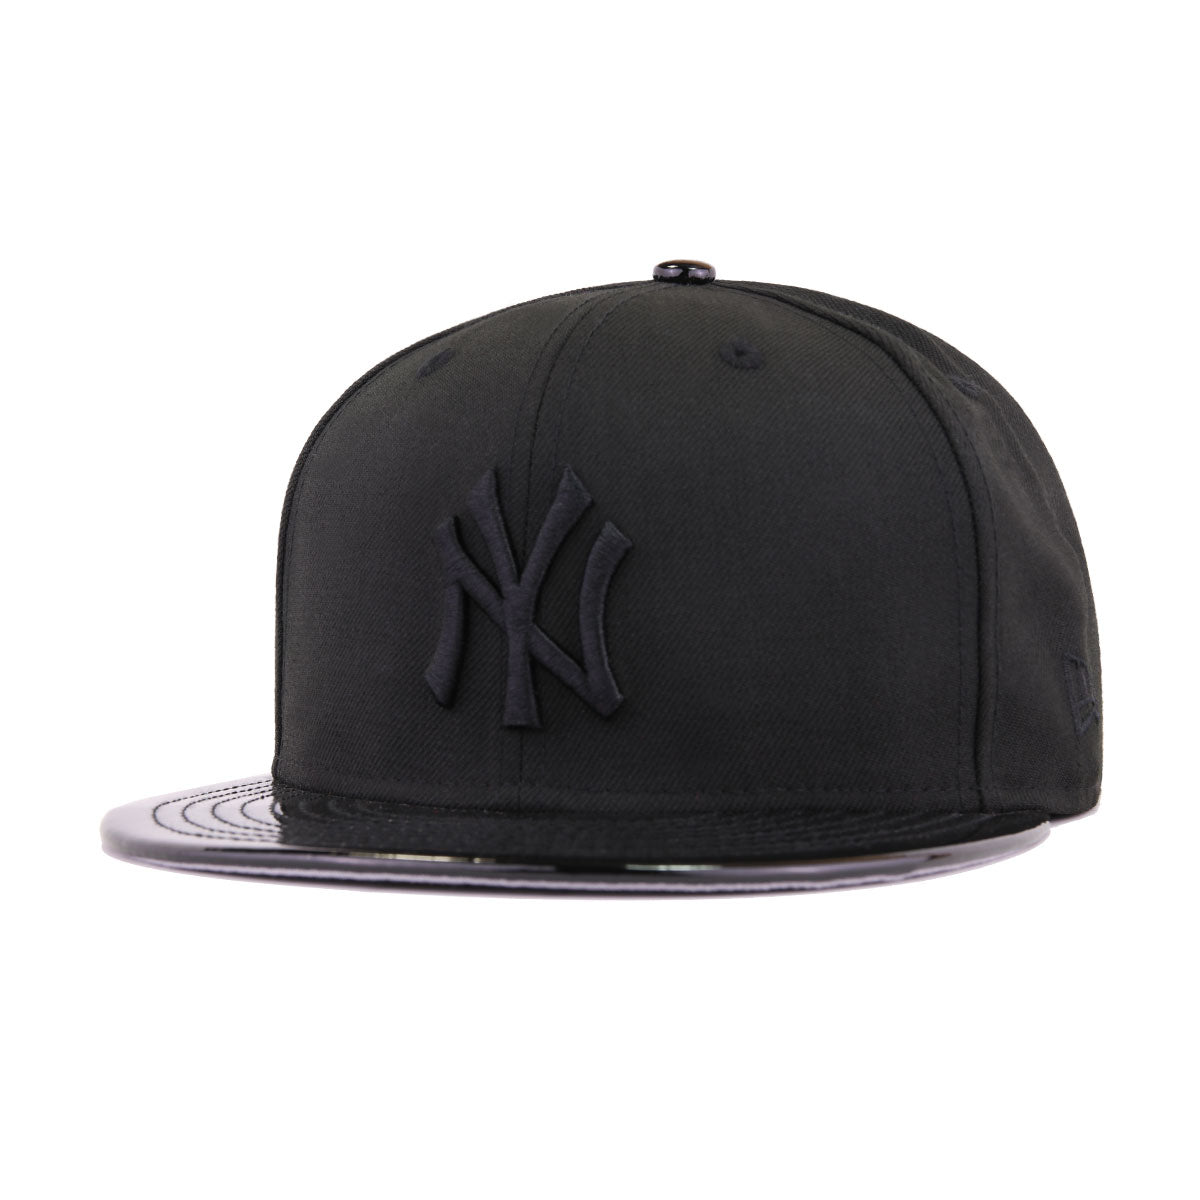 New York Yankees Black Black Patent Leather New Era 59Fifty Fitted